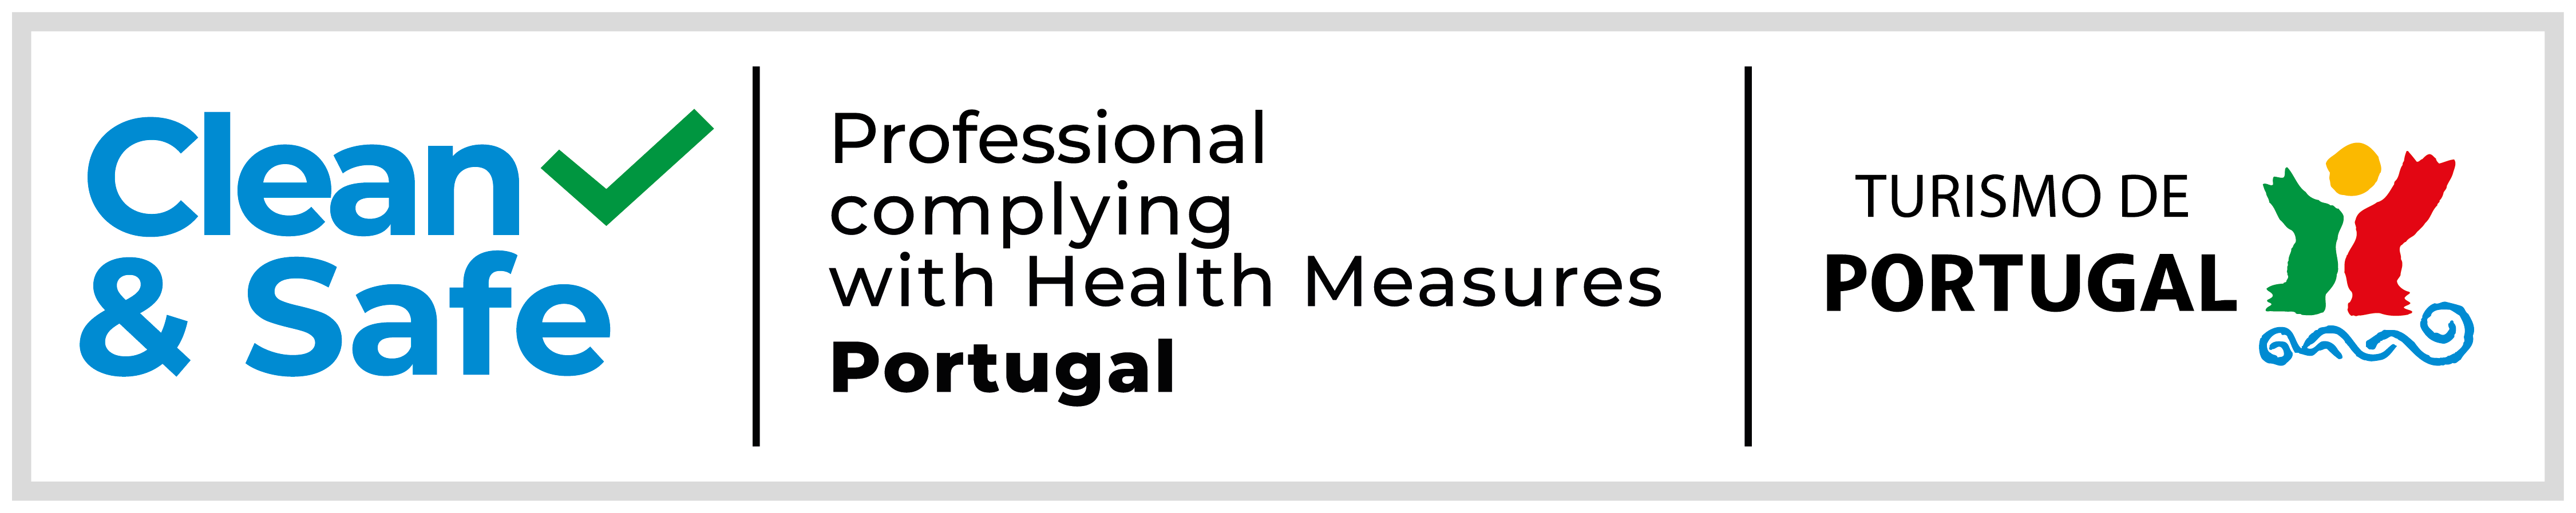 Clean & Safe - Professional complying with Health Measures Portugal